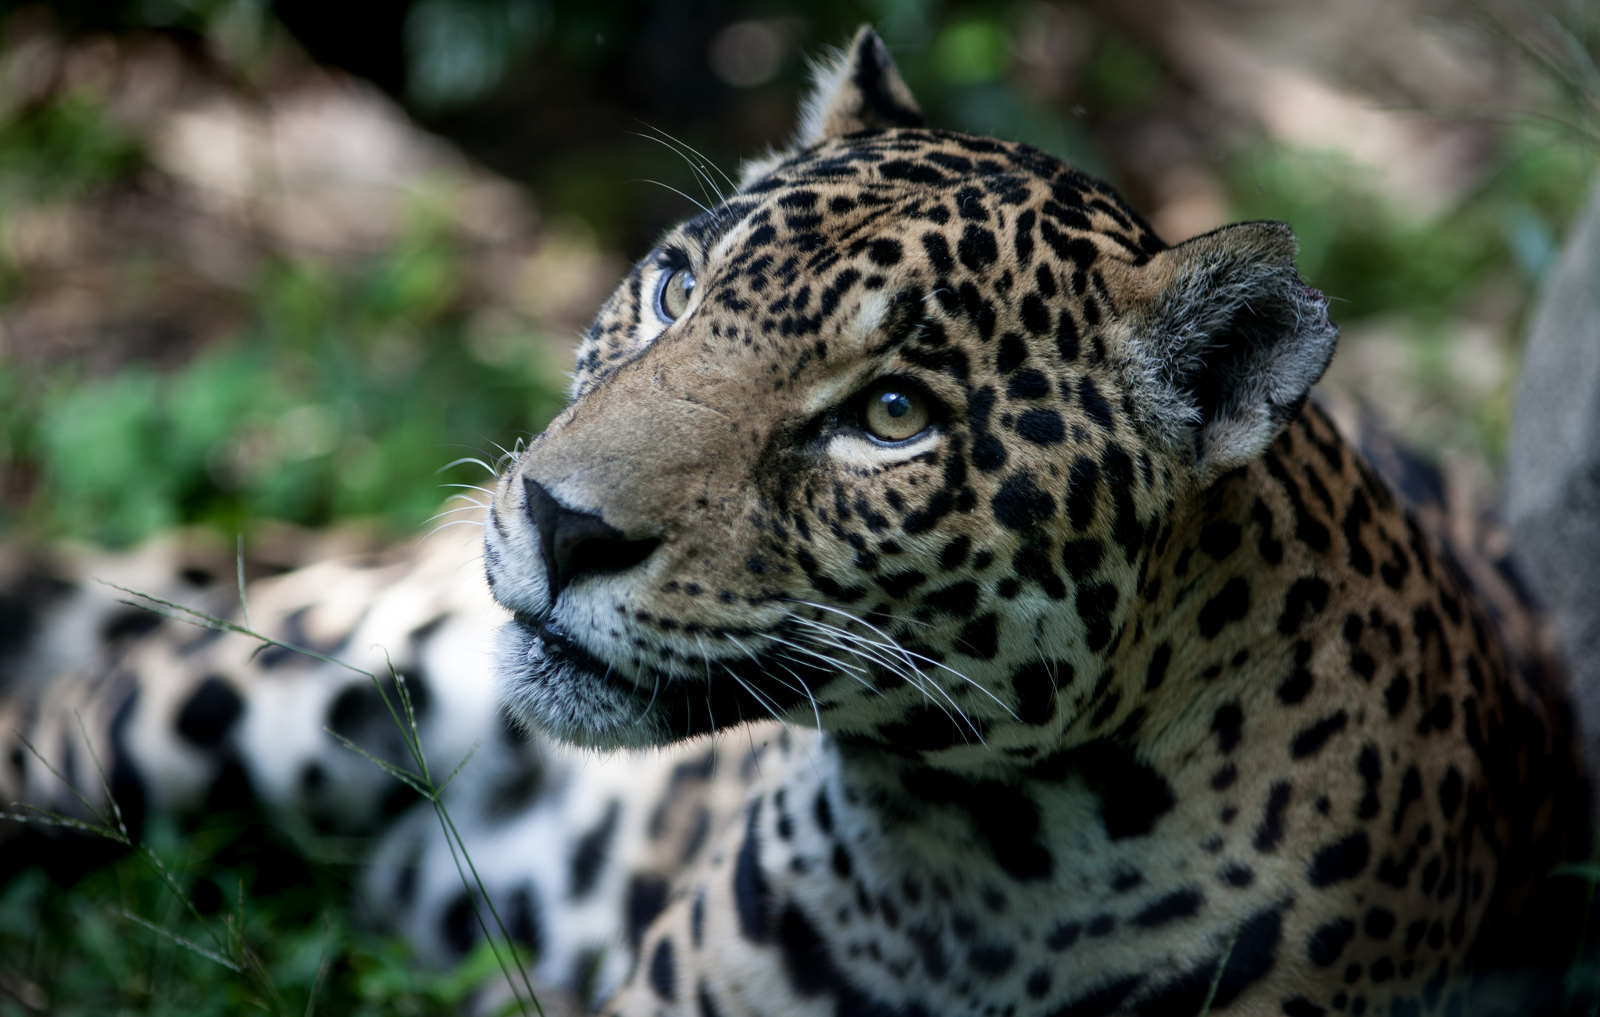 How We're Using Camera Traps to Protect Endangered Jaguars in the Amazon